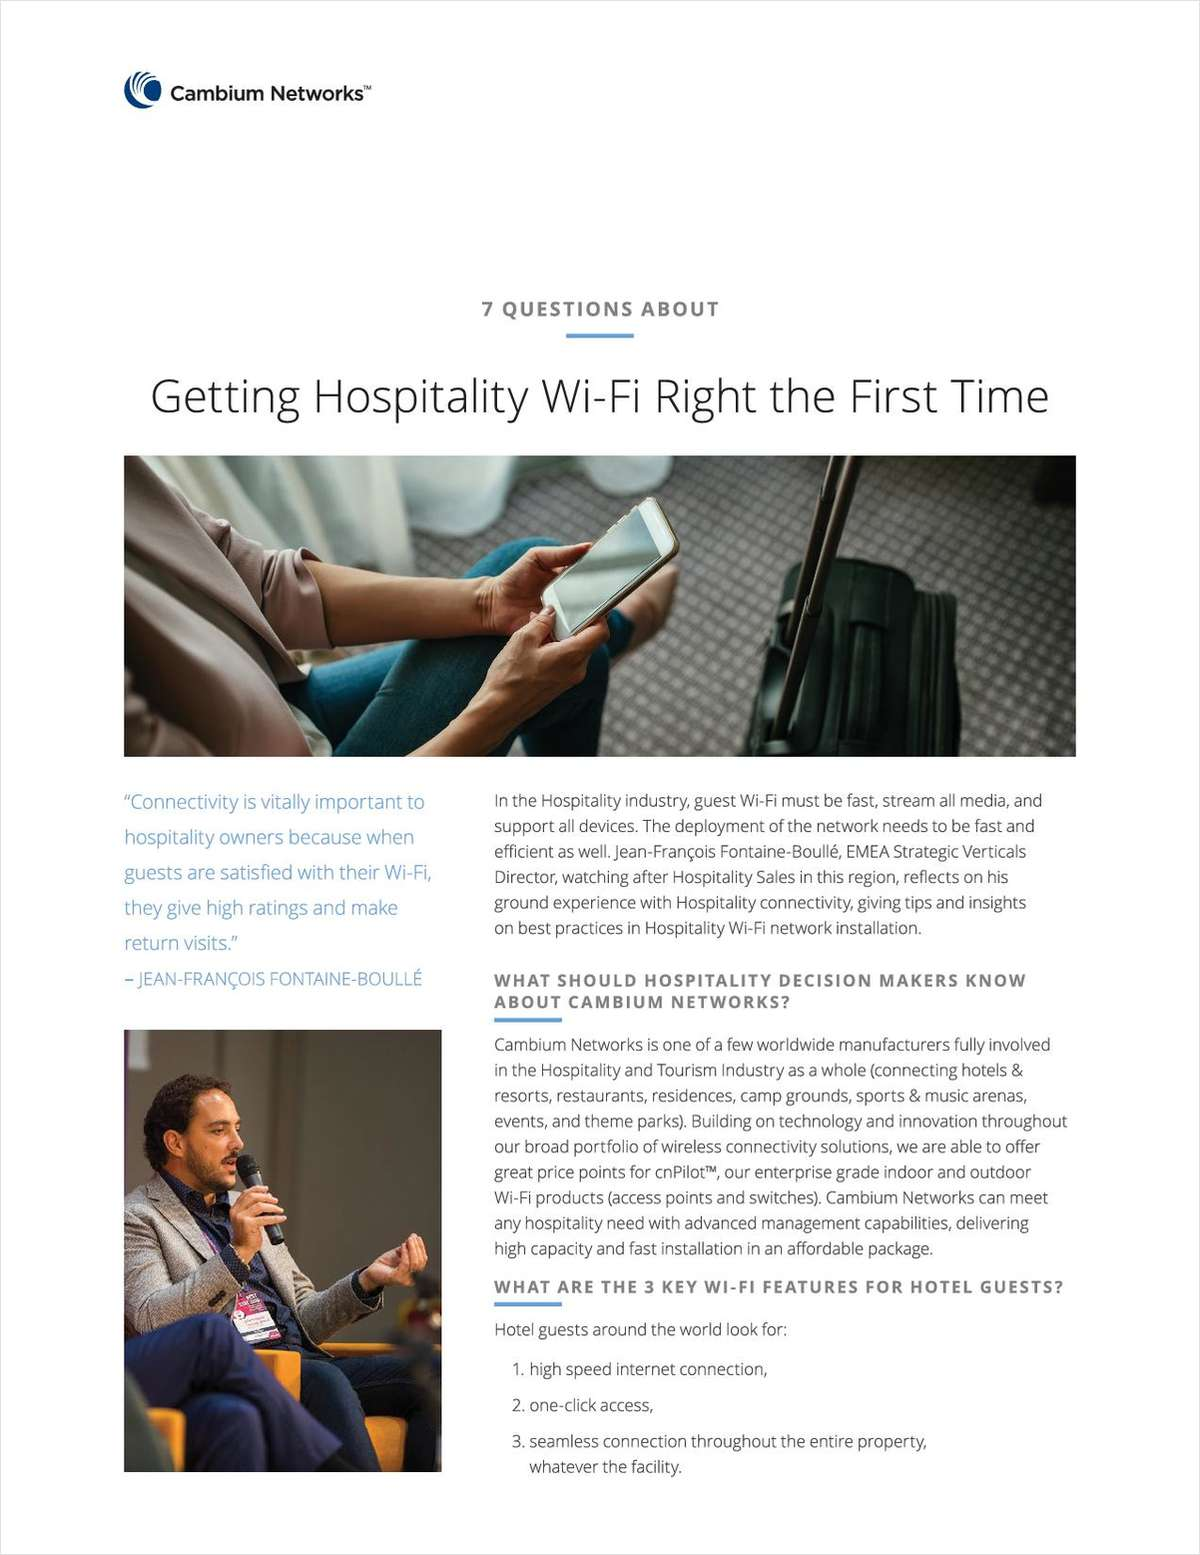 Getting Hospitality Wi-Fi Right the First Time